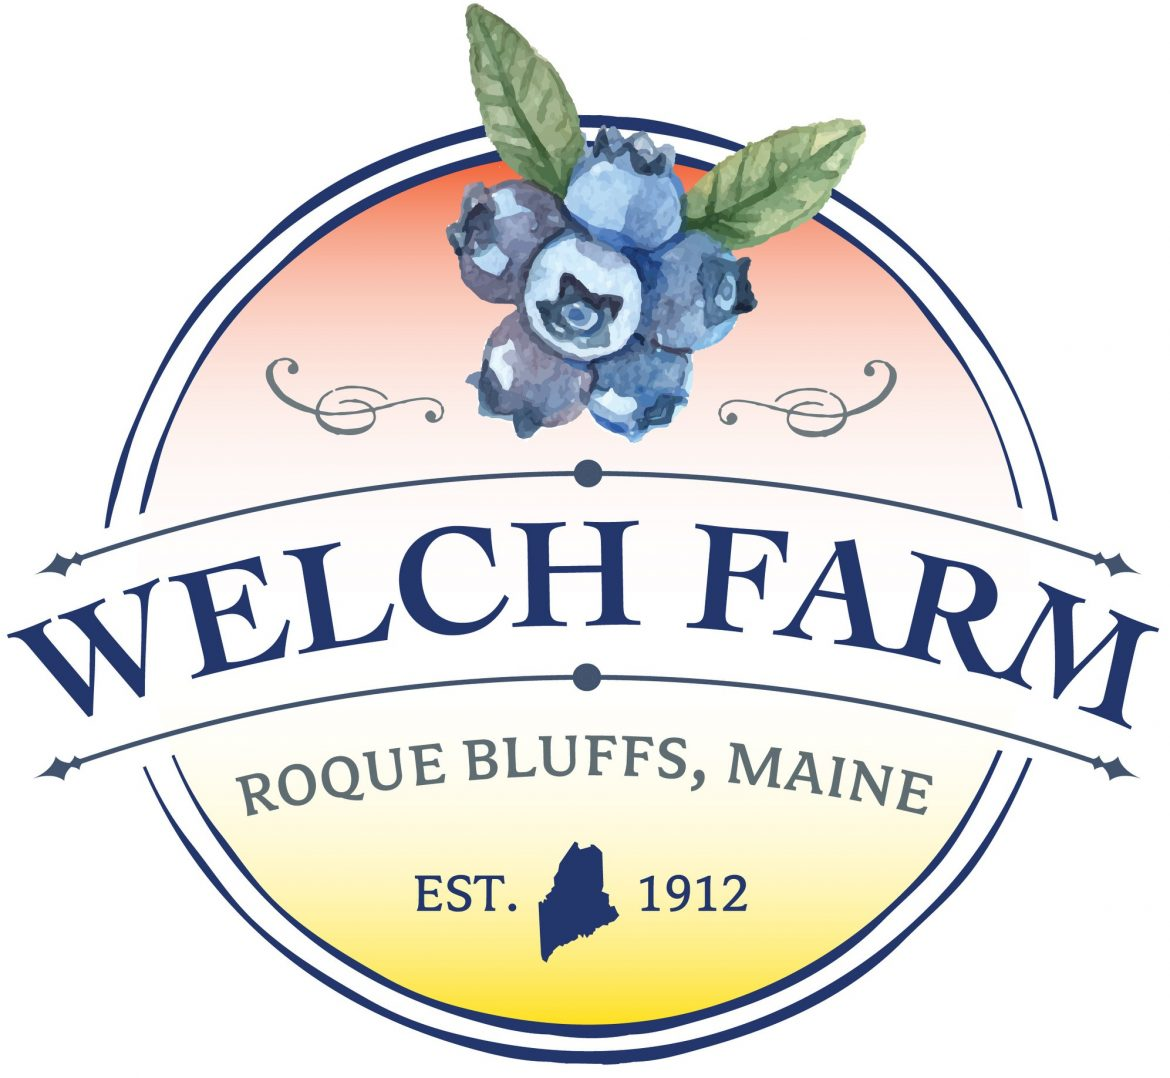 The Blueberries of Welch Farm in Roque Bluffs